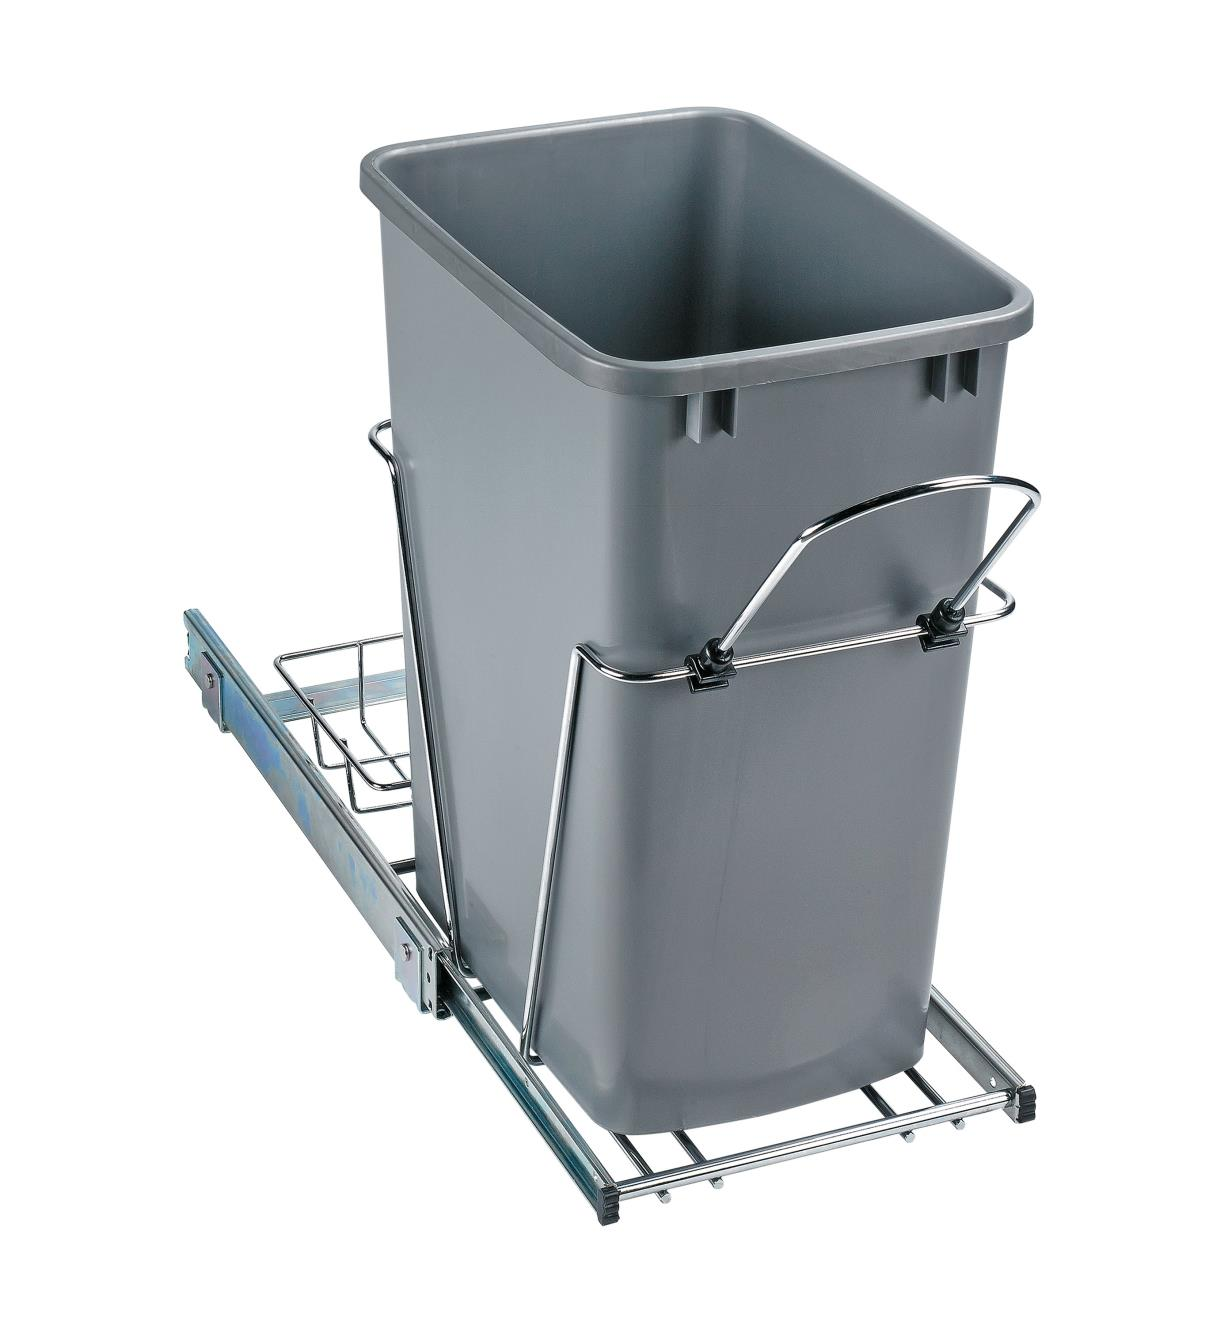 12K7750 - Waste-Container Kit, Single